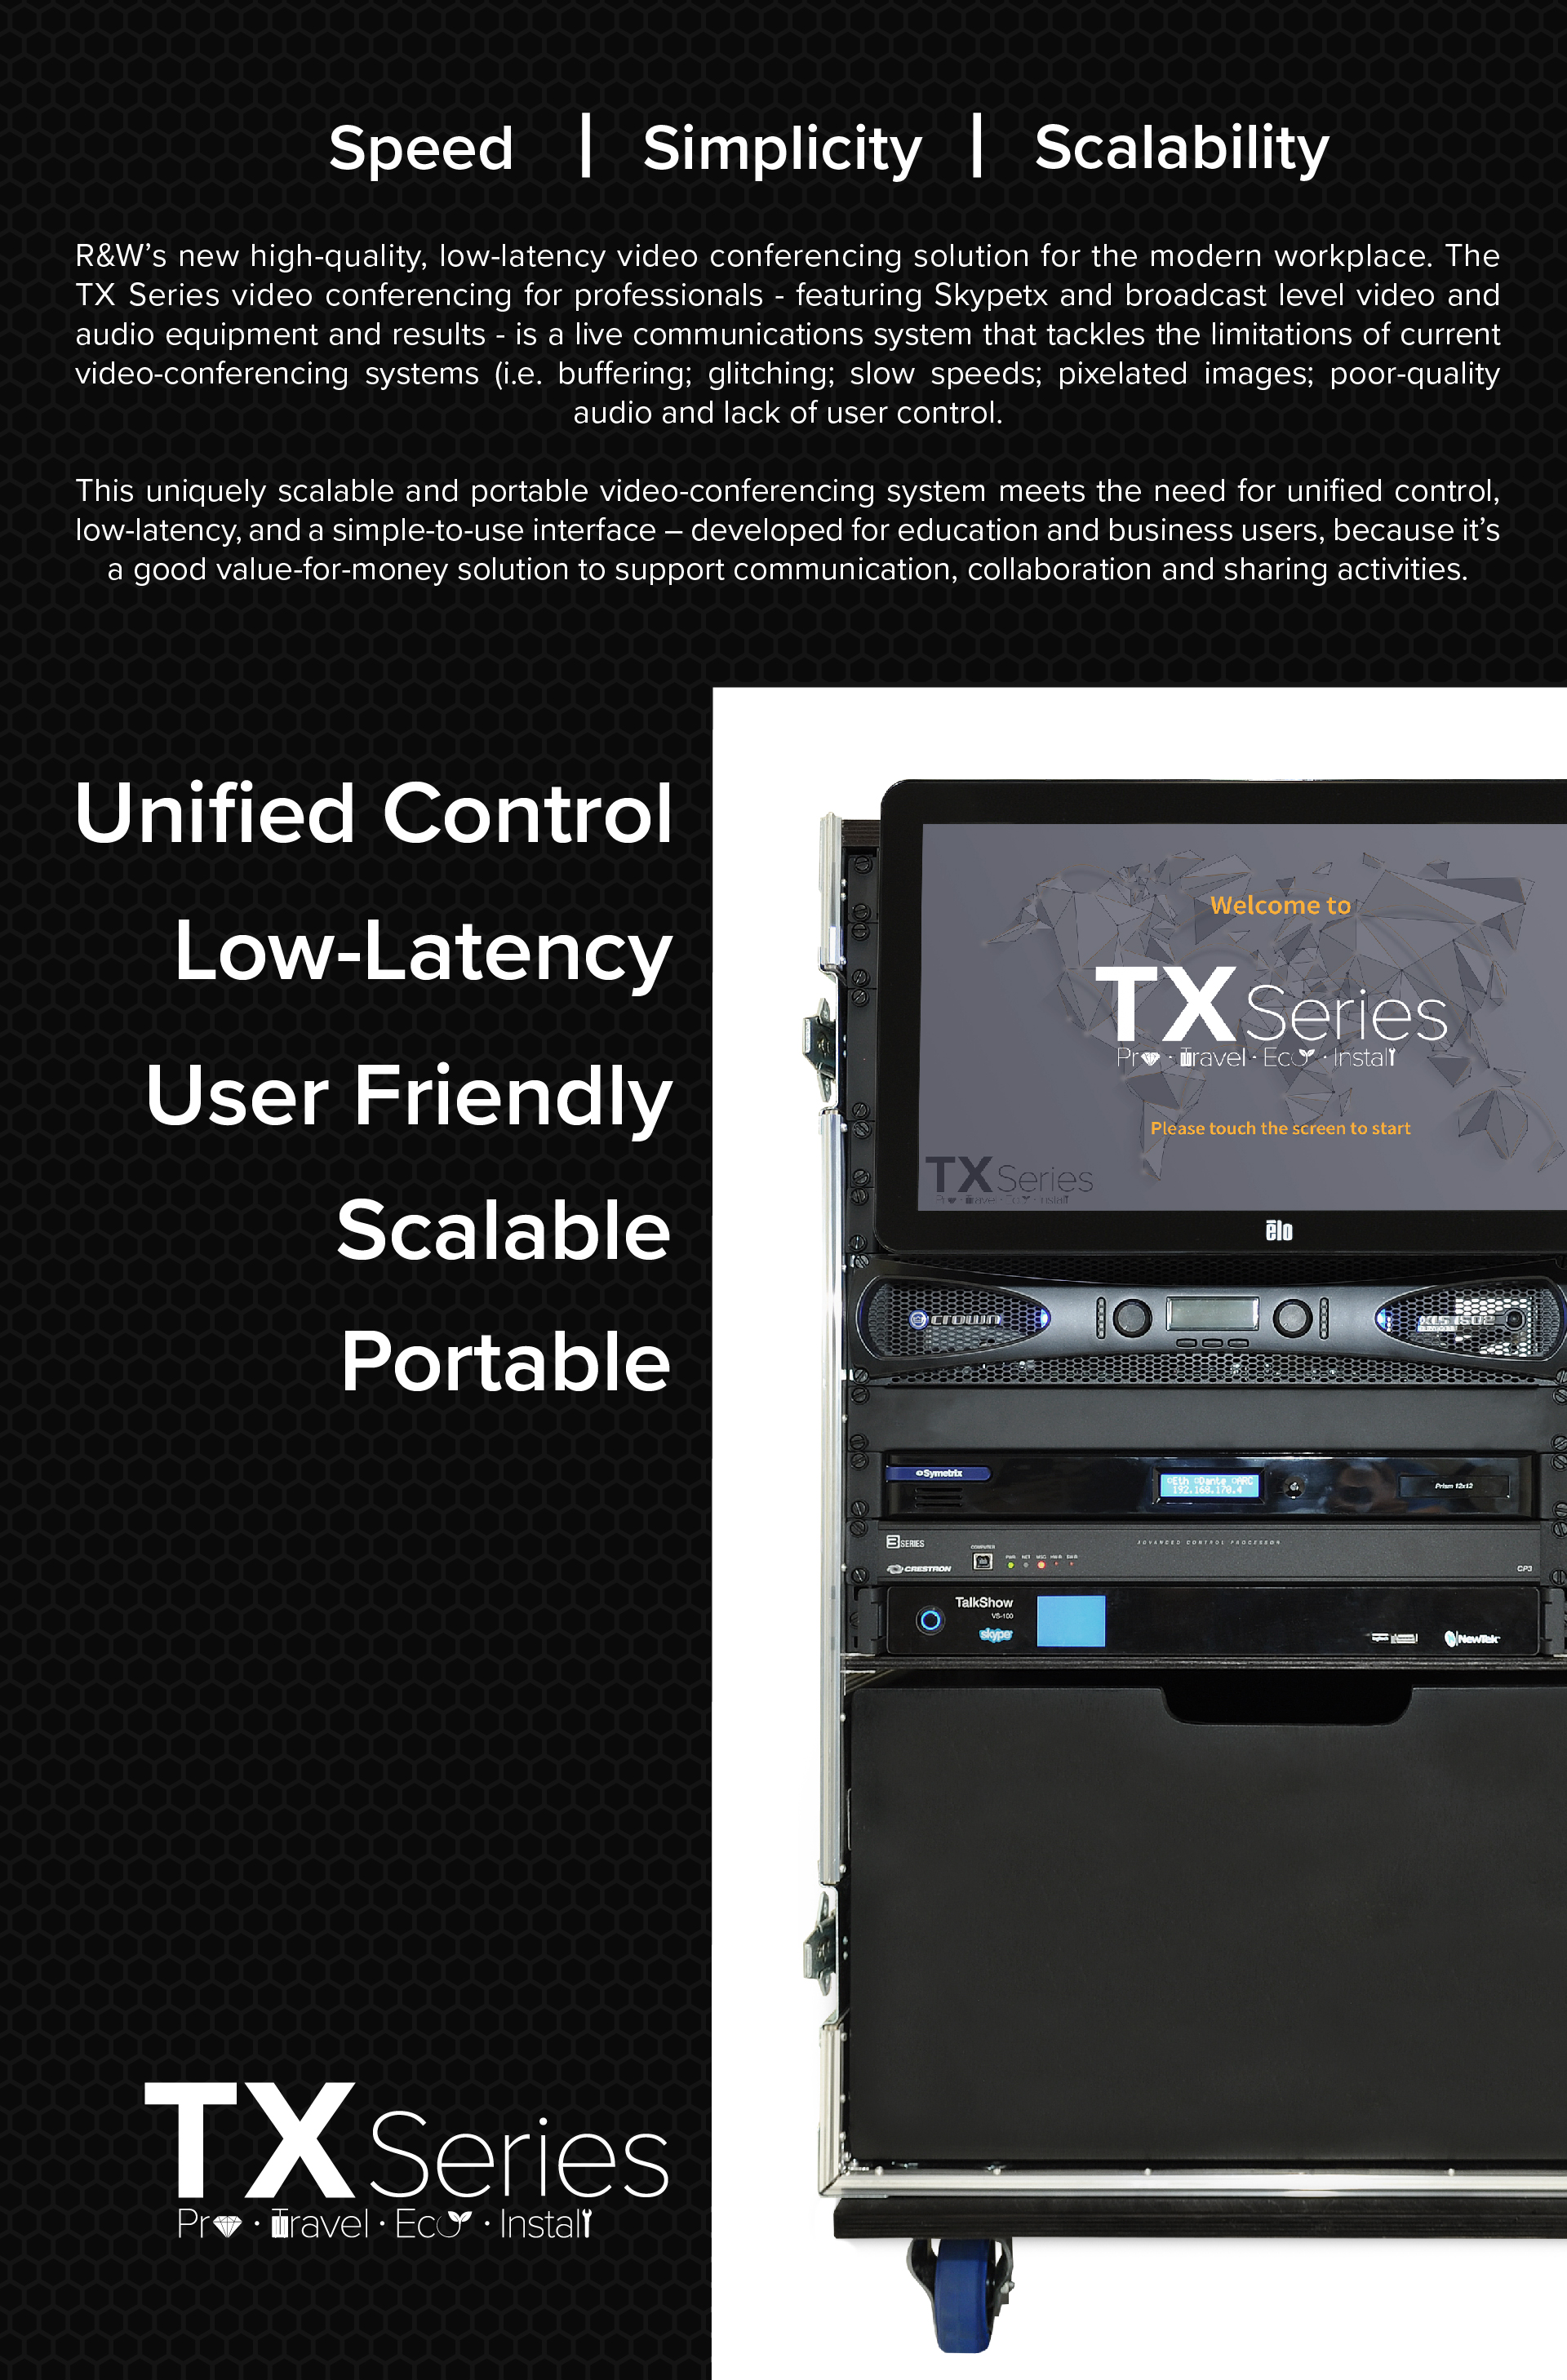 TX Series The new standard for professional video conferencing technology